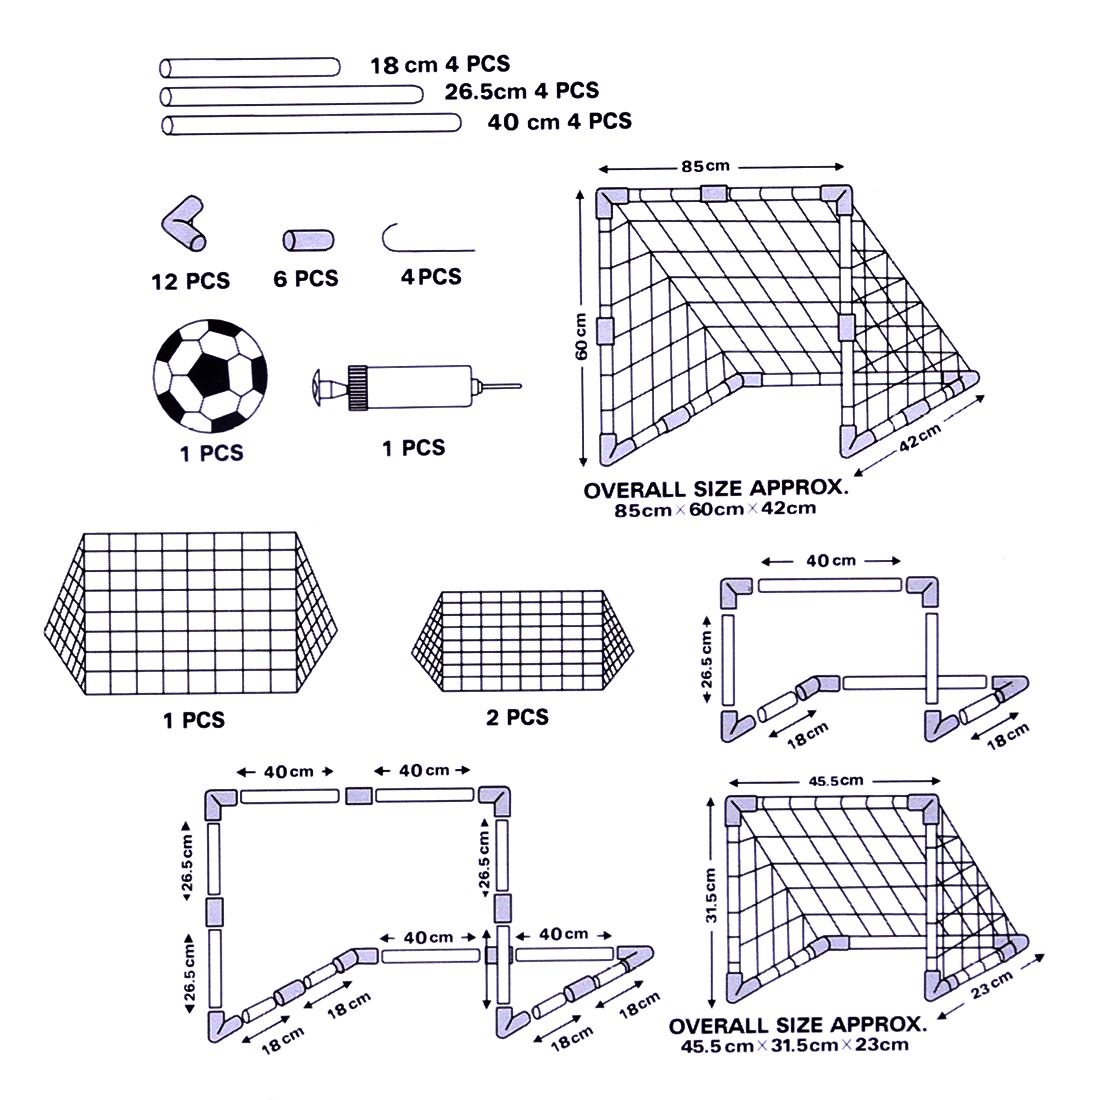 Portable Collapsible Football Kit 2 In 1 Kids Basketball Backboard Hoop Dimensions Diagram Soccer Goal Set Training Toy L Sports From Toys Hobbies On